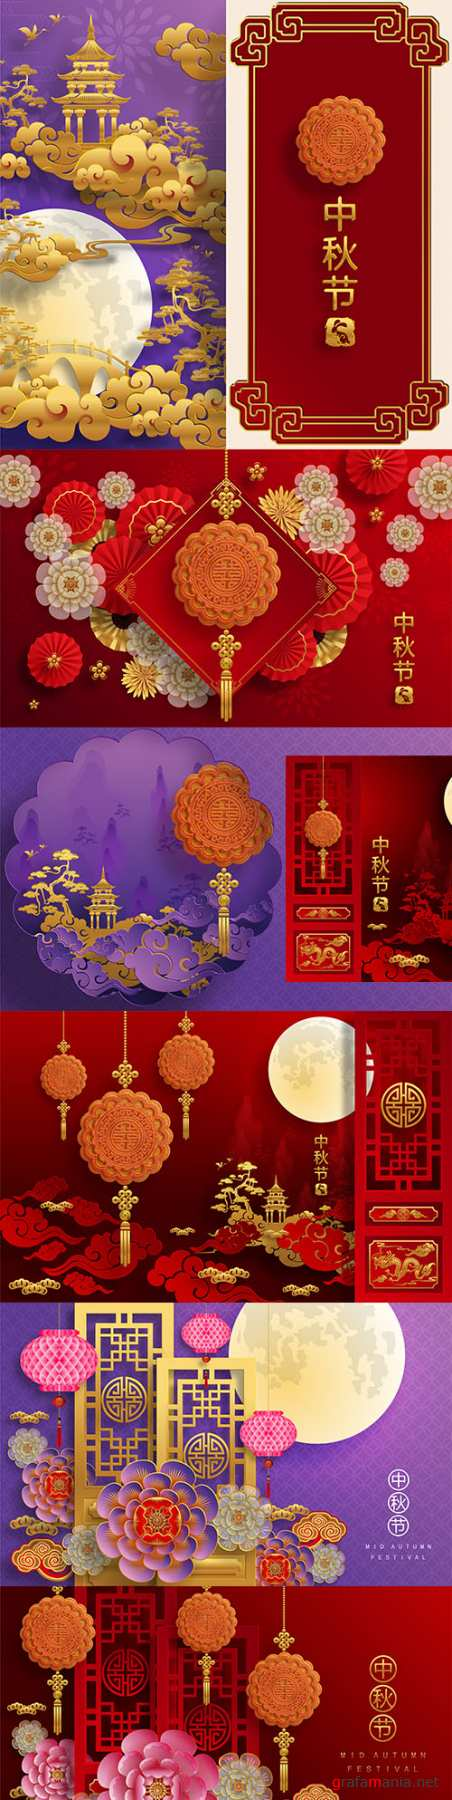 Mid autumn festival bright colourful illustrations